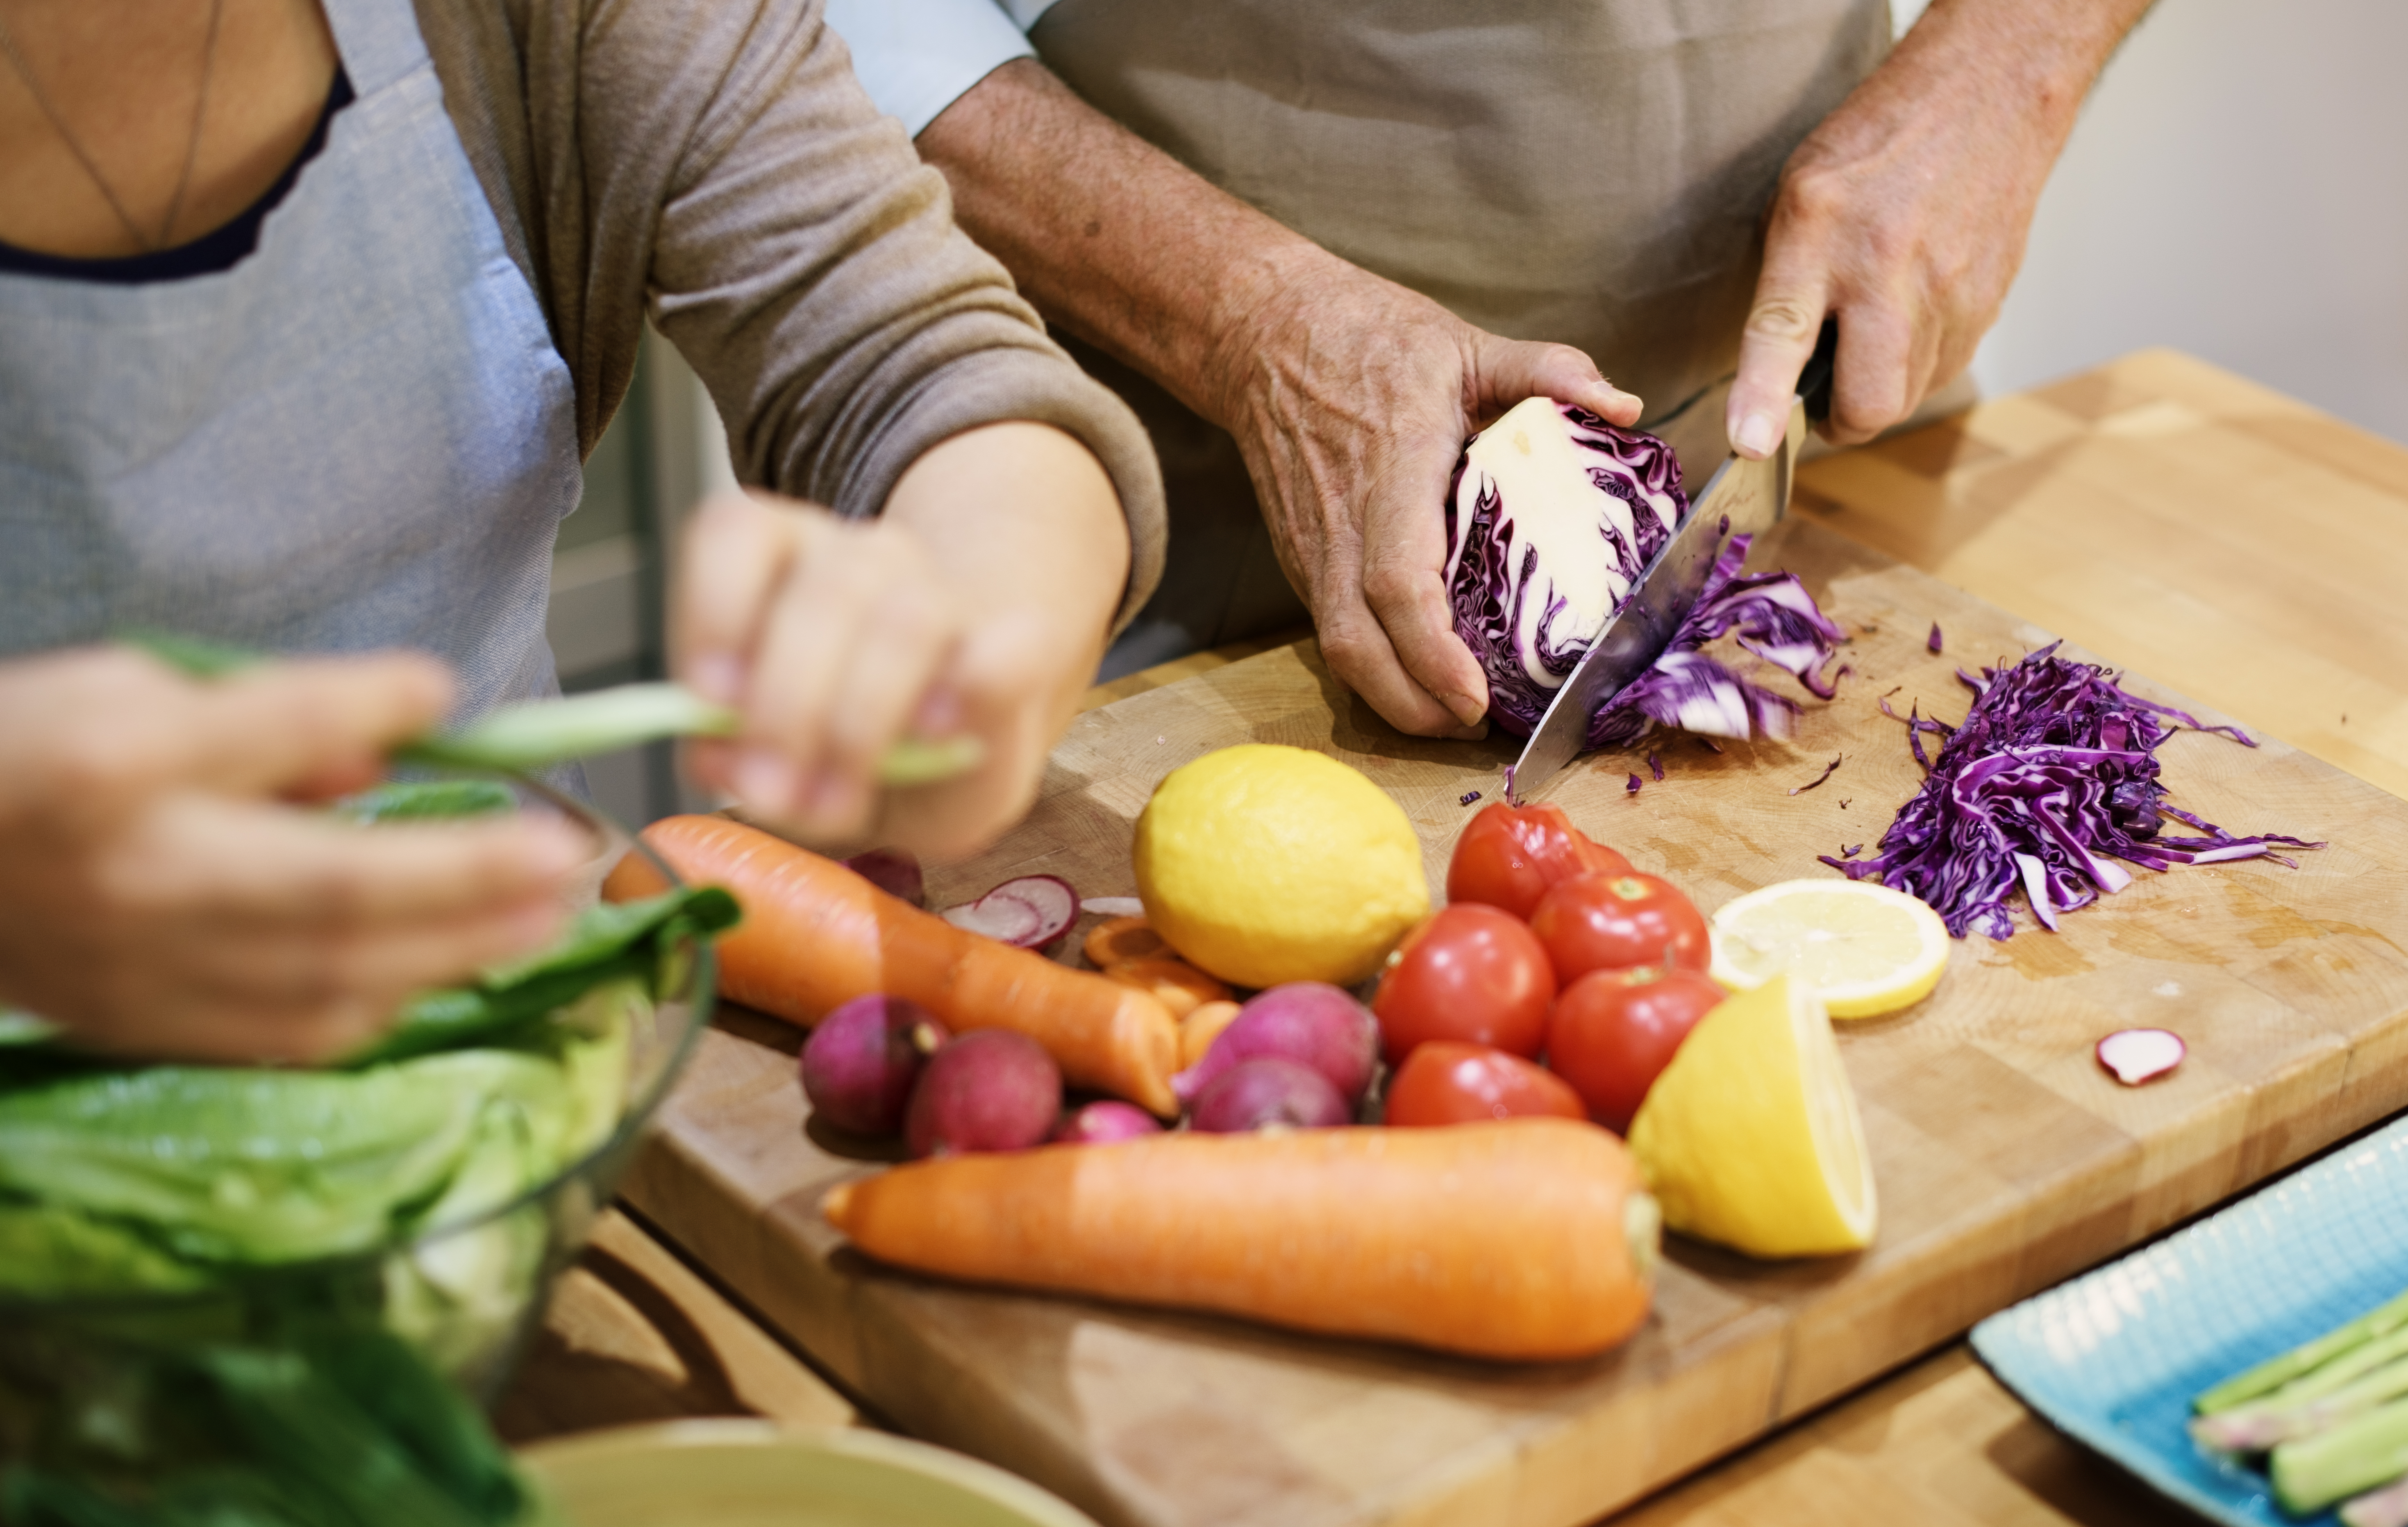 Cooking for a healthy life at home